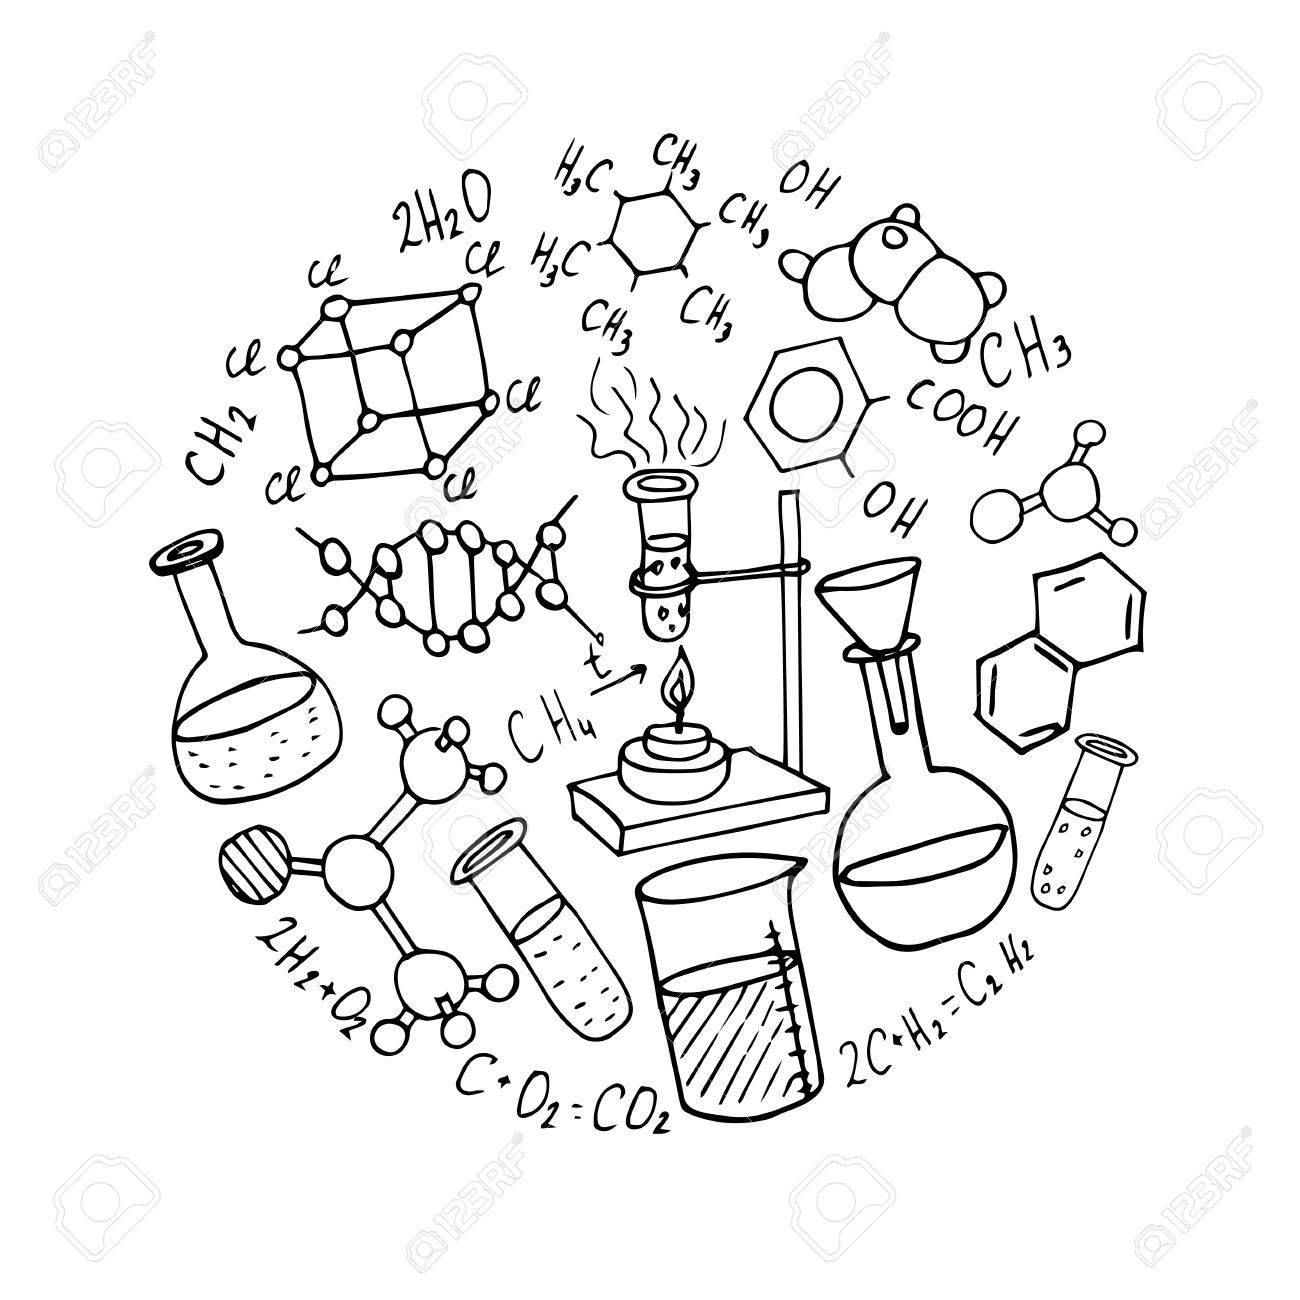 Chemistry Lab Drawing At Getdrawings